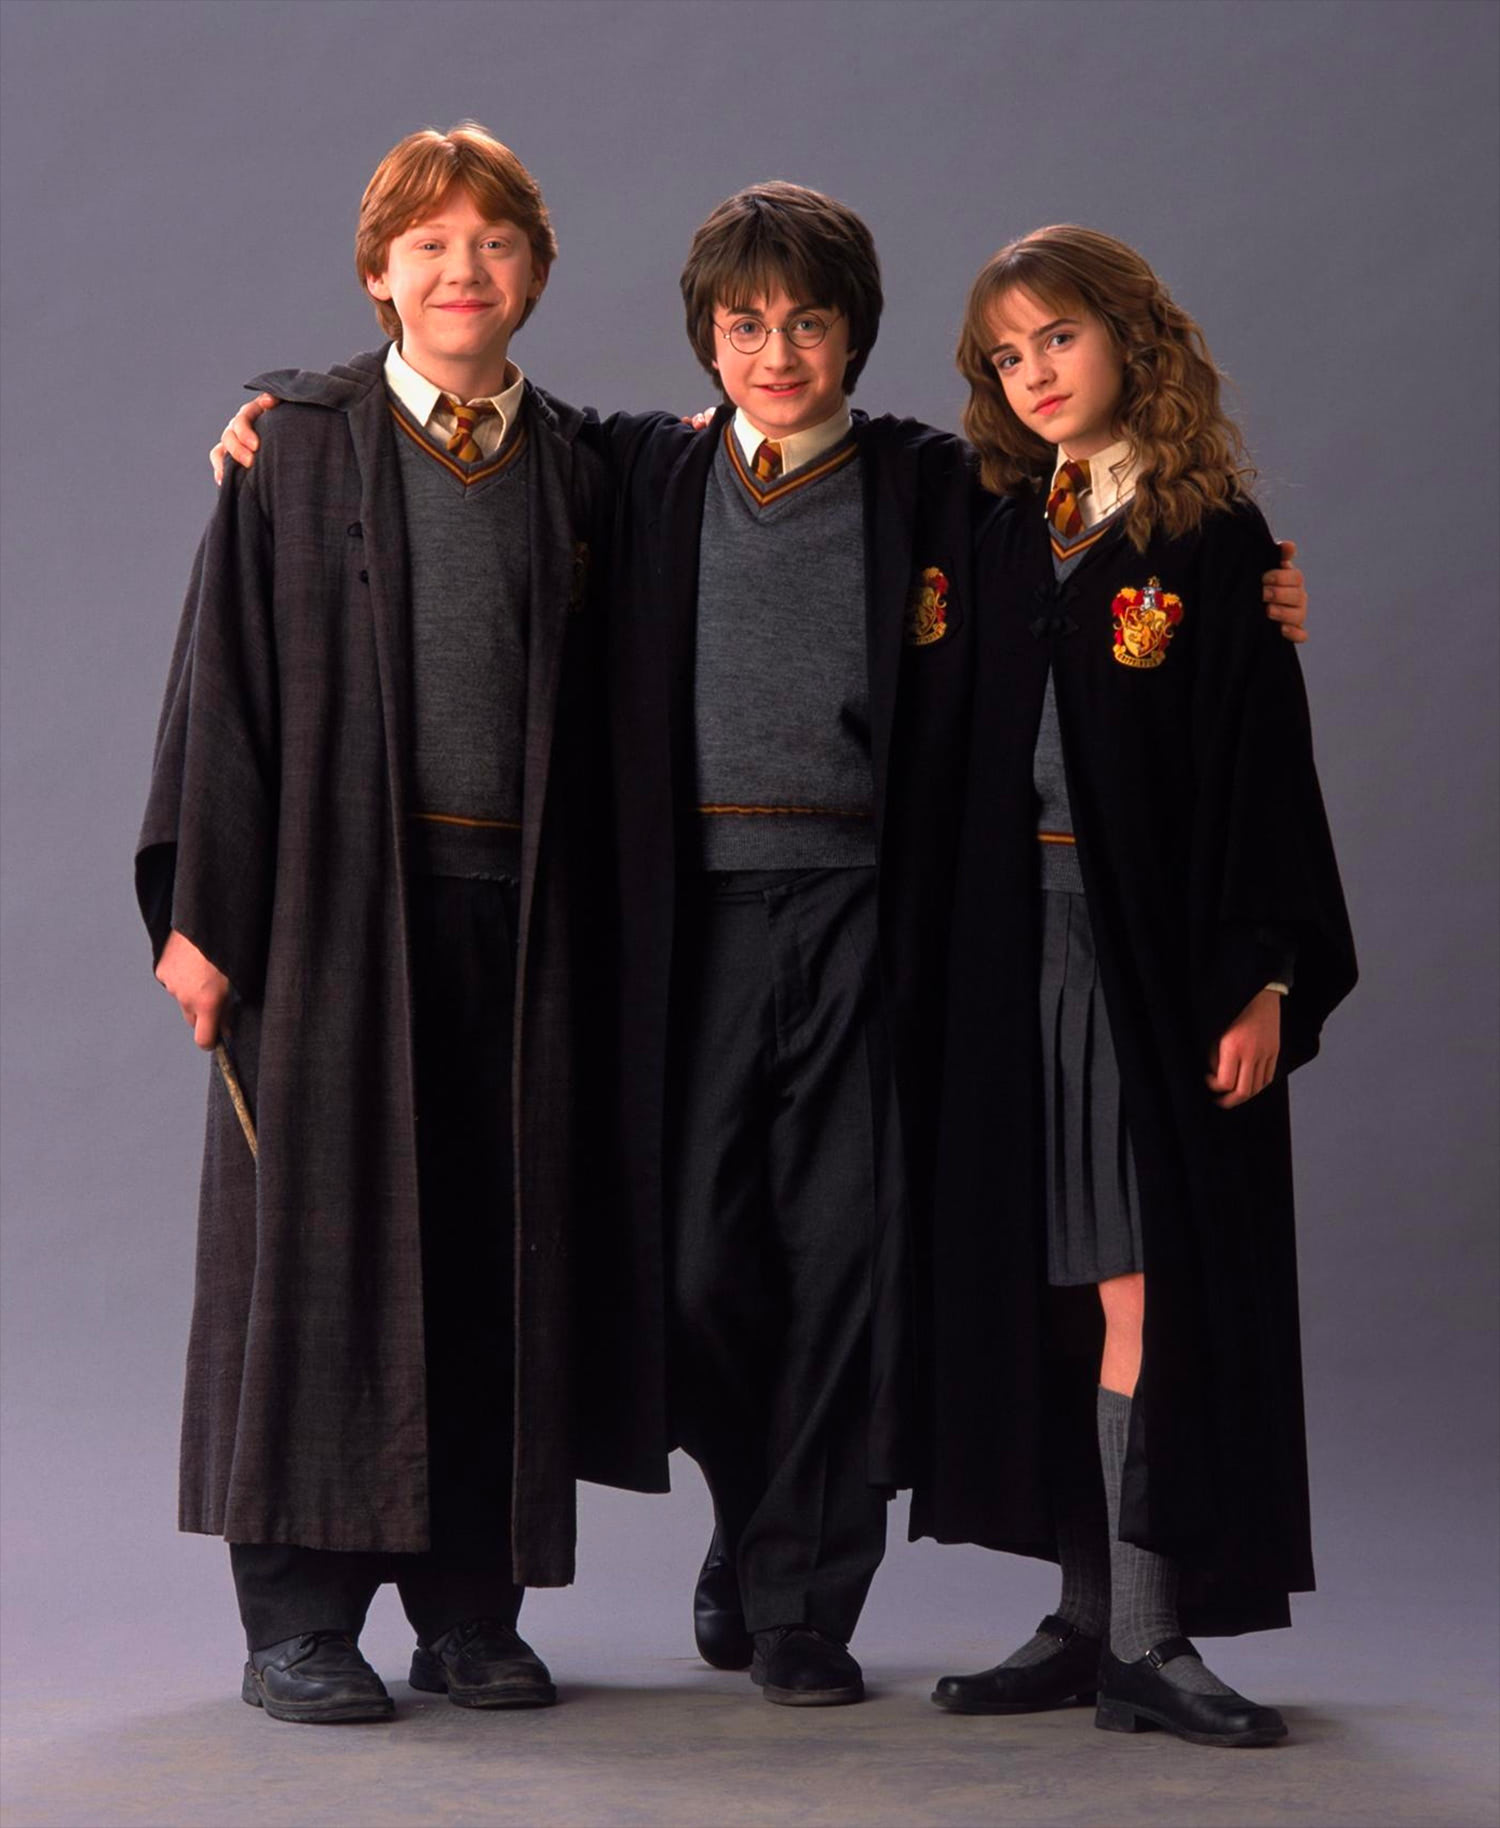 Portrait of Ron Weasley, Harry Potter and Hermione Granger